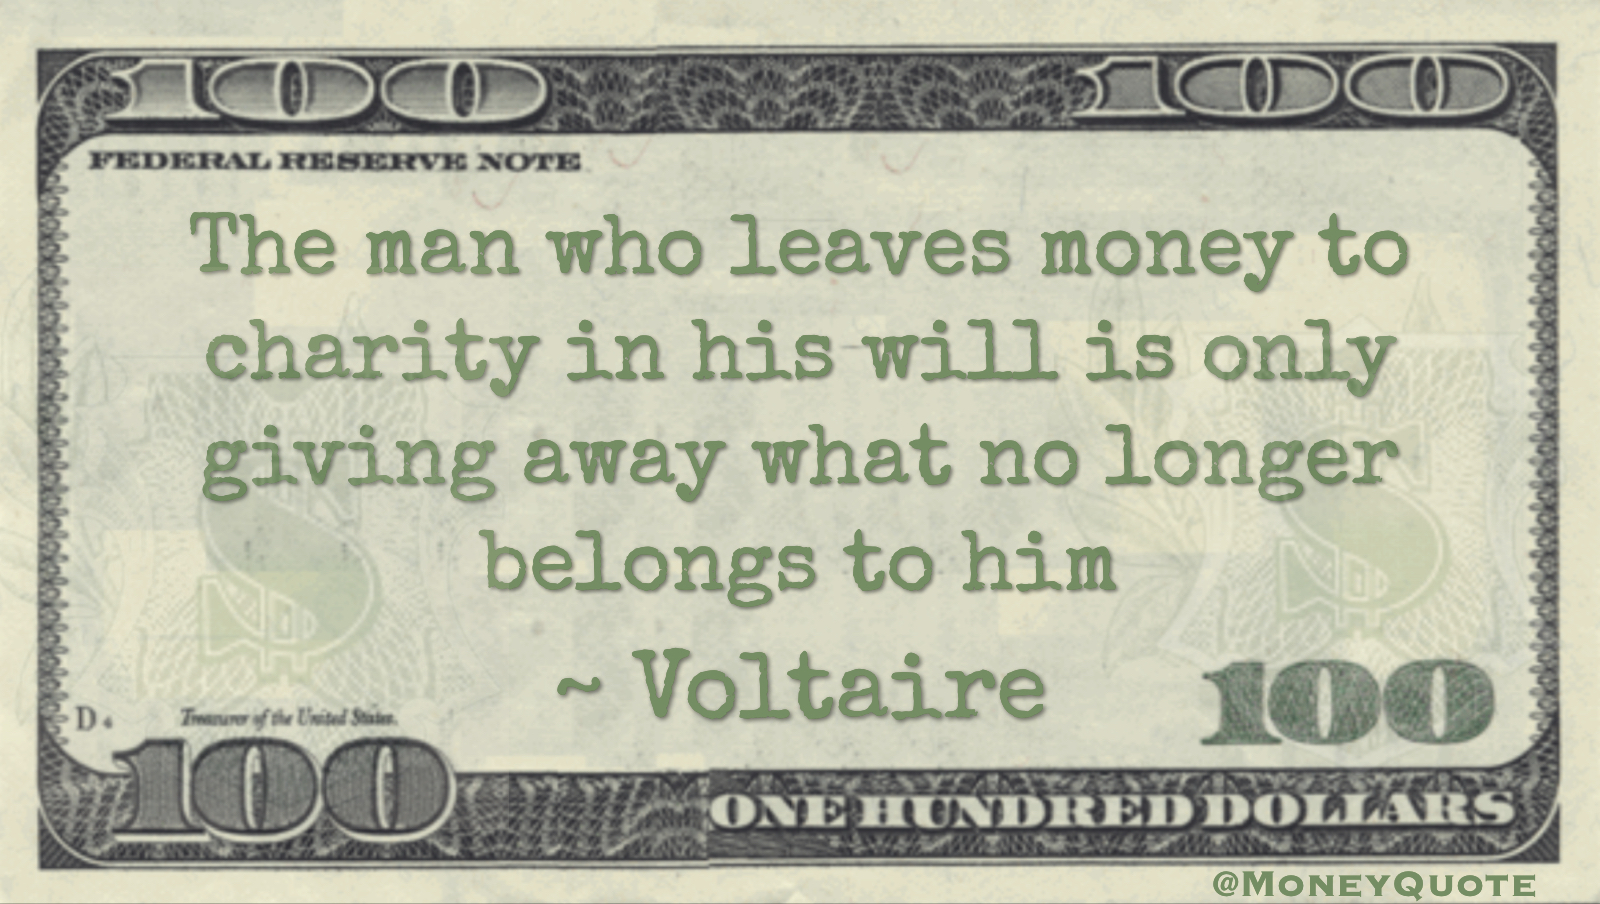 The man who leaves money to charity in his will is only giving away what no longer belongs to him Quote